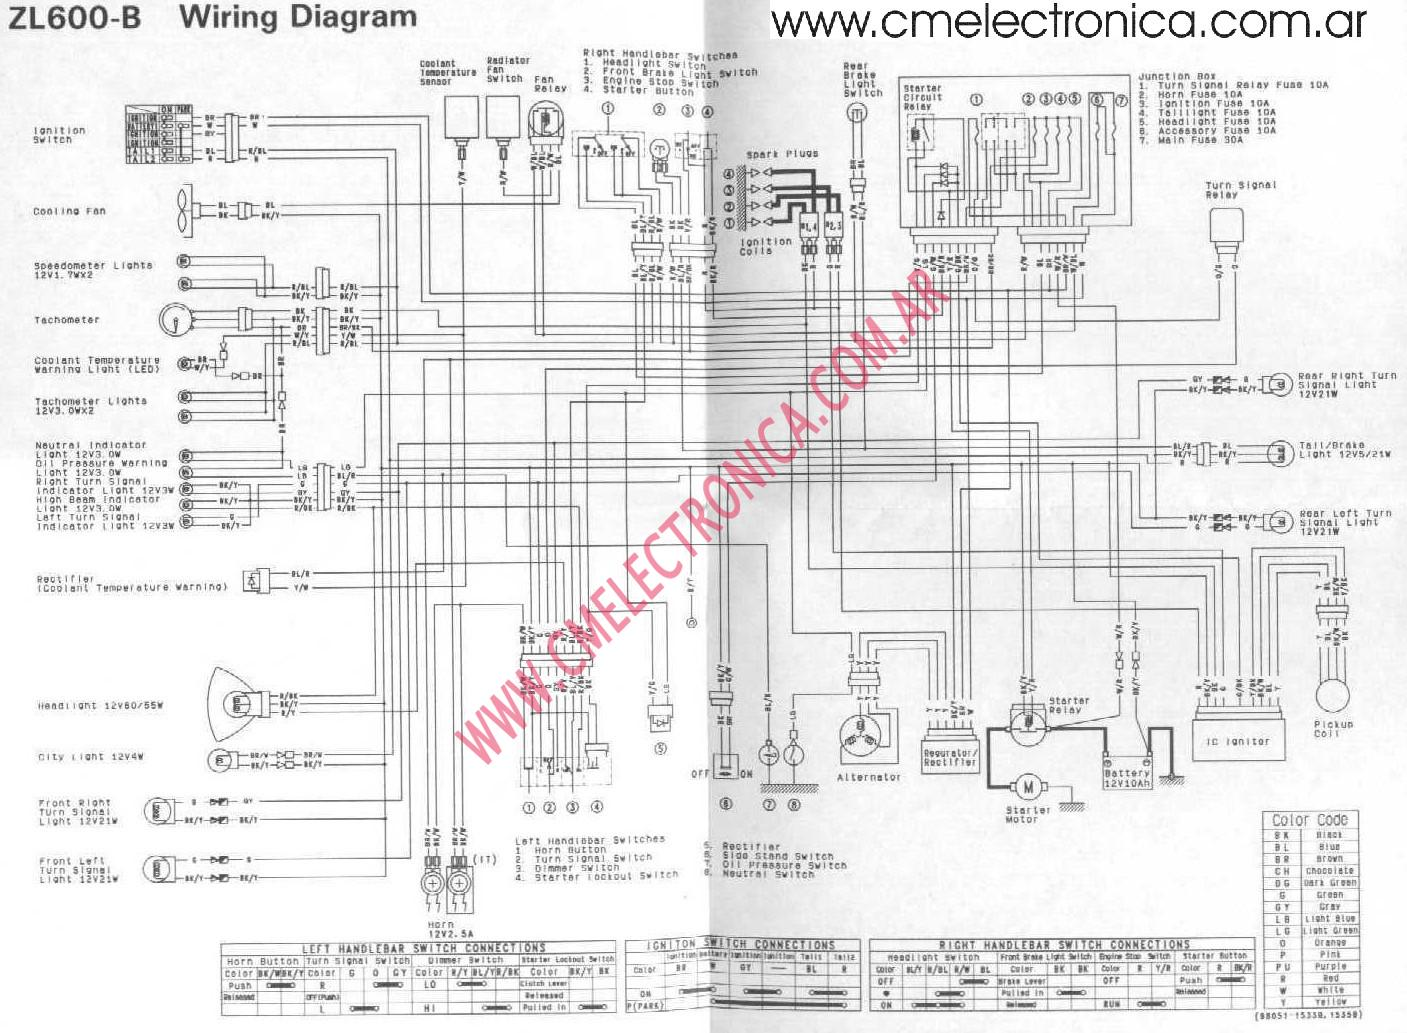 02 Grizzly Cdi Box Wiring Diagram